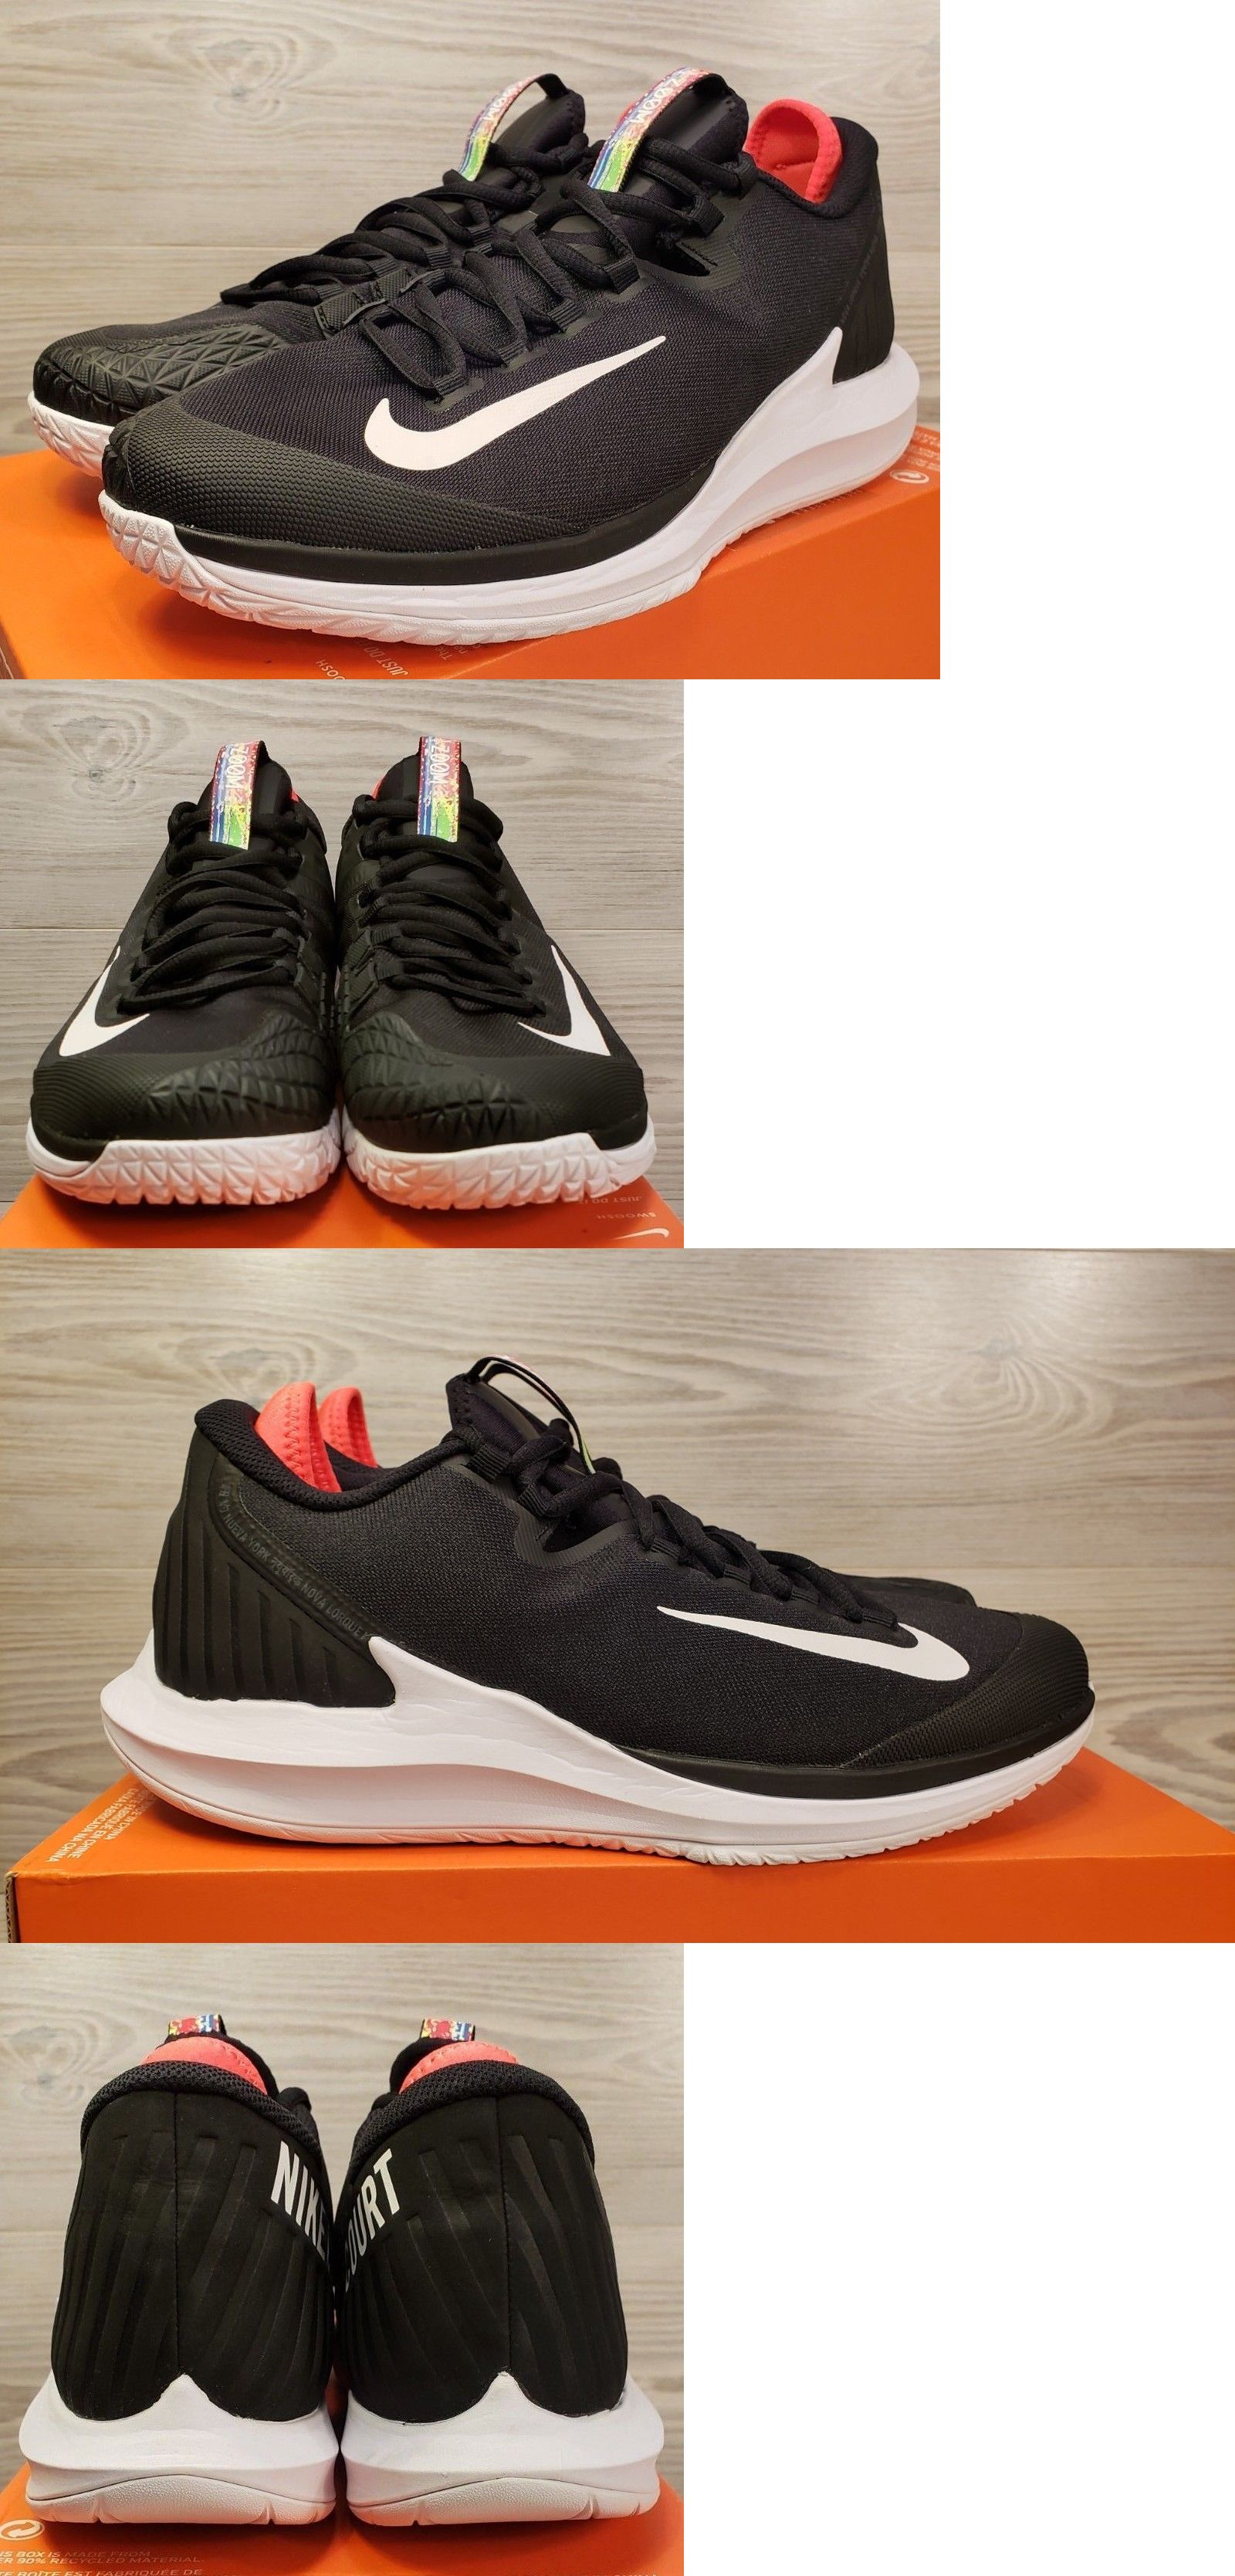 72909e1a8c6 Clothing Shoes and Accessories 62229  Nike Court Air Zoom Zero Hc Tennis  Shoes Black White Aa8018-006 Mens 8.5 Wmns 10 -  BUY IT NOW ONLY   109.99  on eBay!